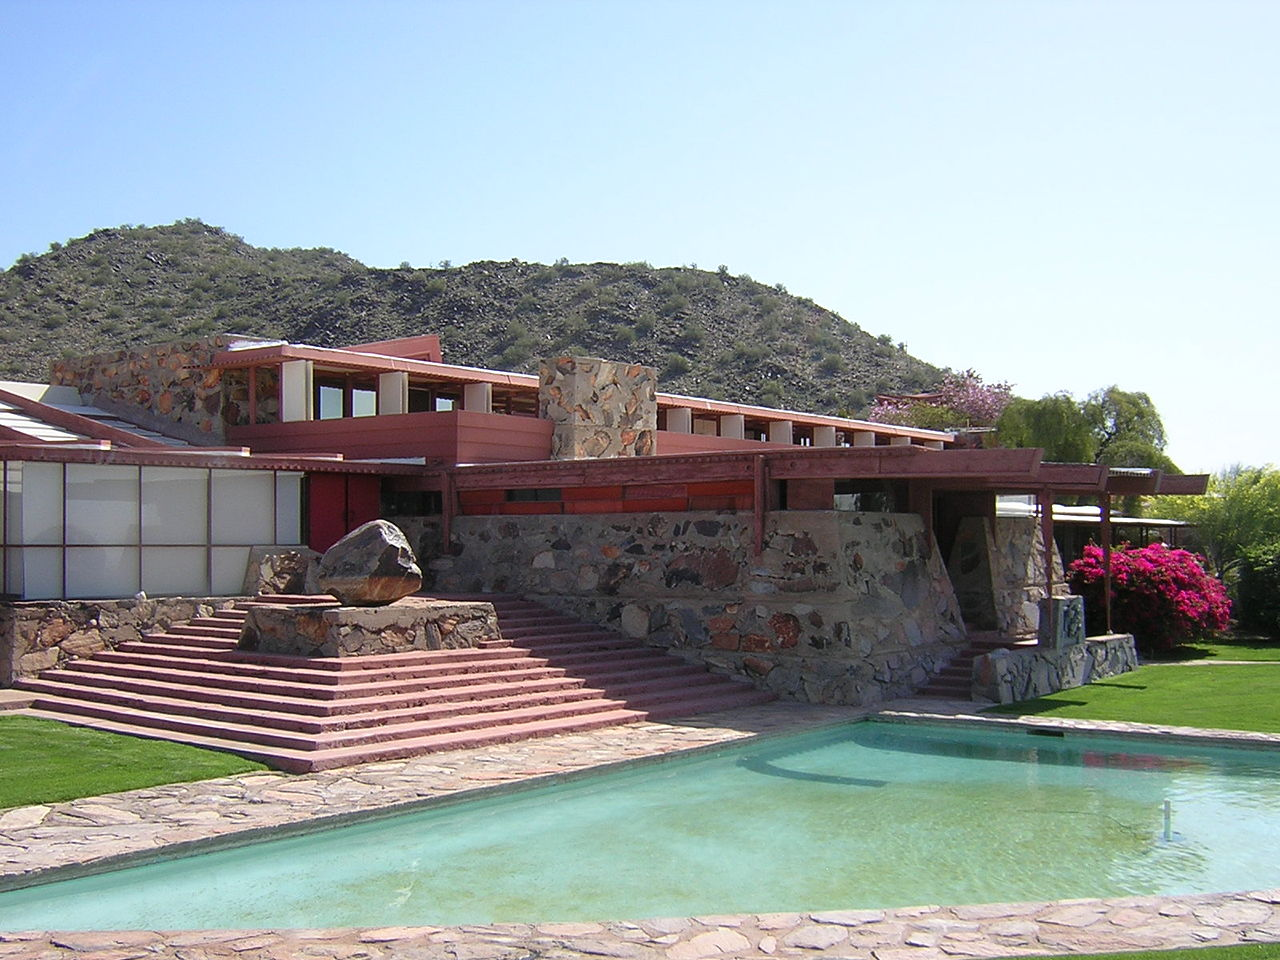 ... Frank Lloyd Wright School of Architecture. Taliesin West